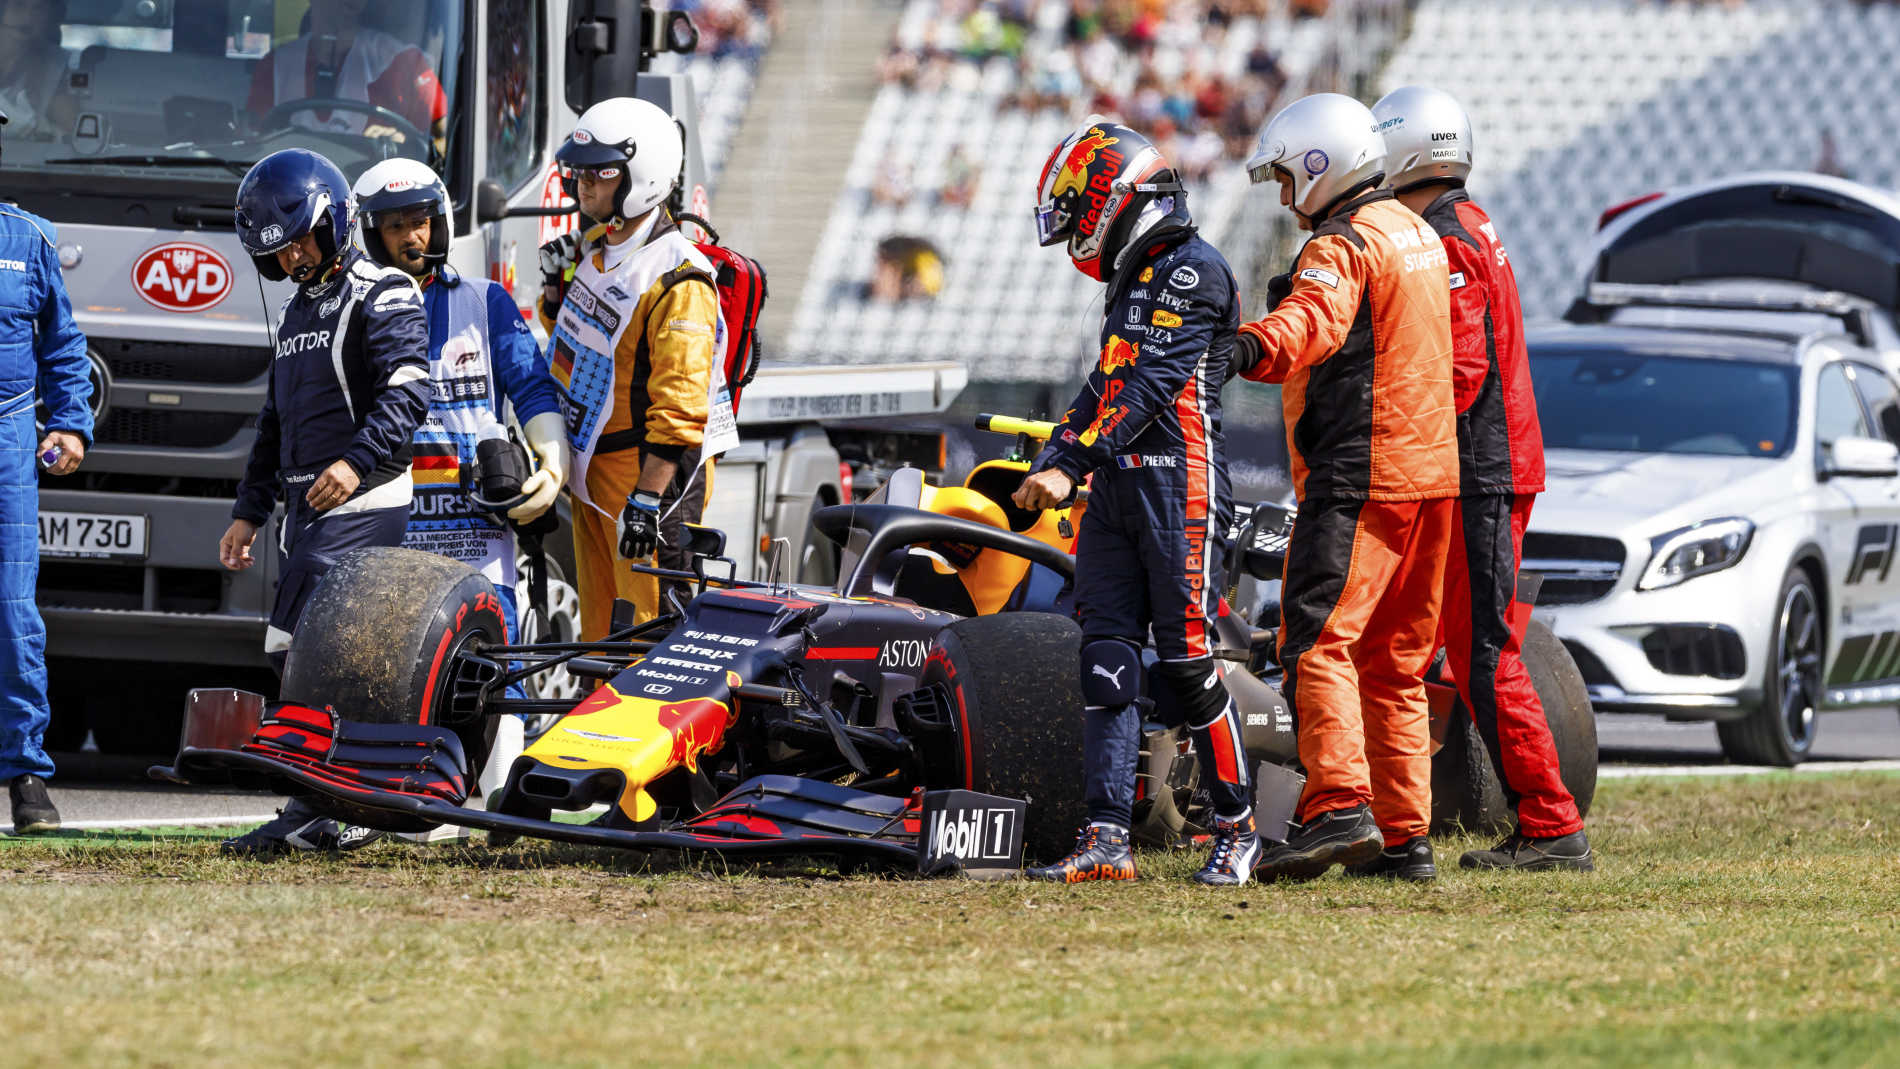 Gasly's German GP practice crash 'annoying' says Red Bull